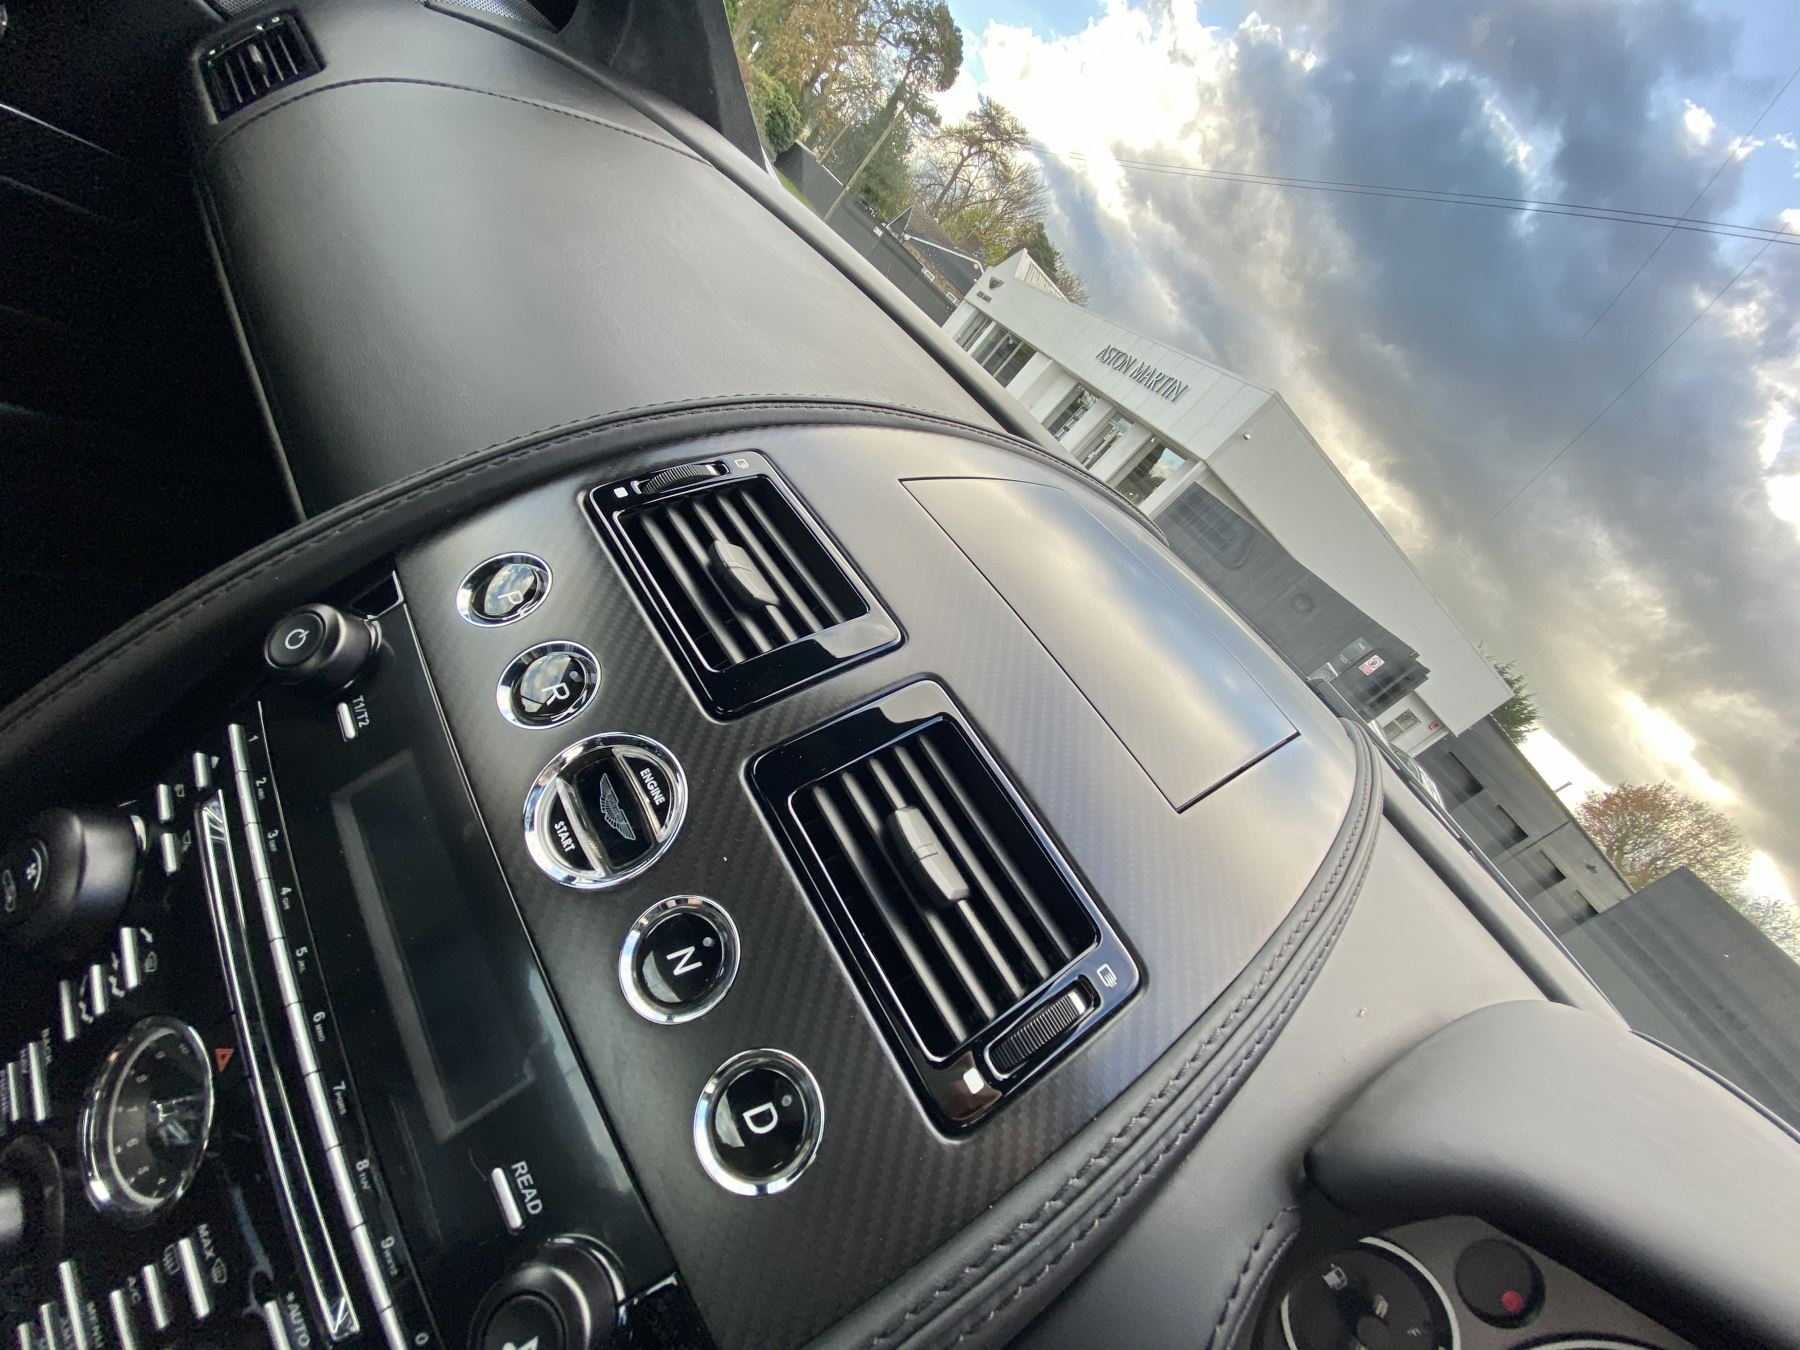 Aston Martin DB9 Carbon Edition V12 2dr Touchtronic image 16